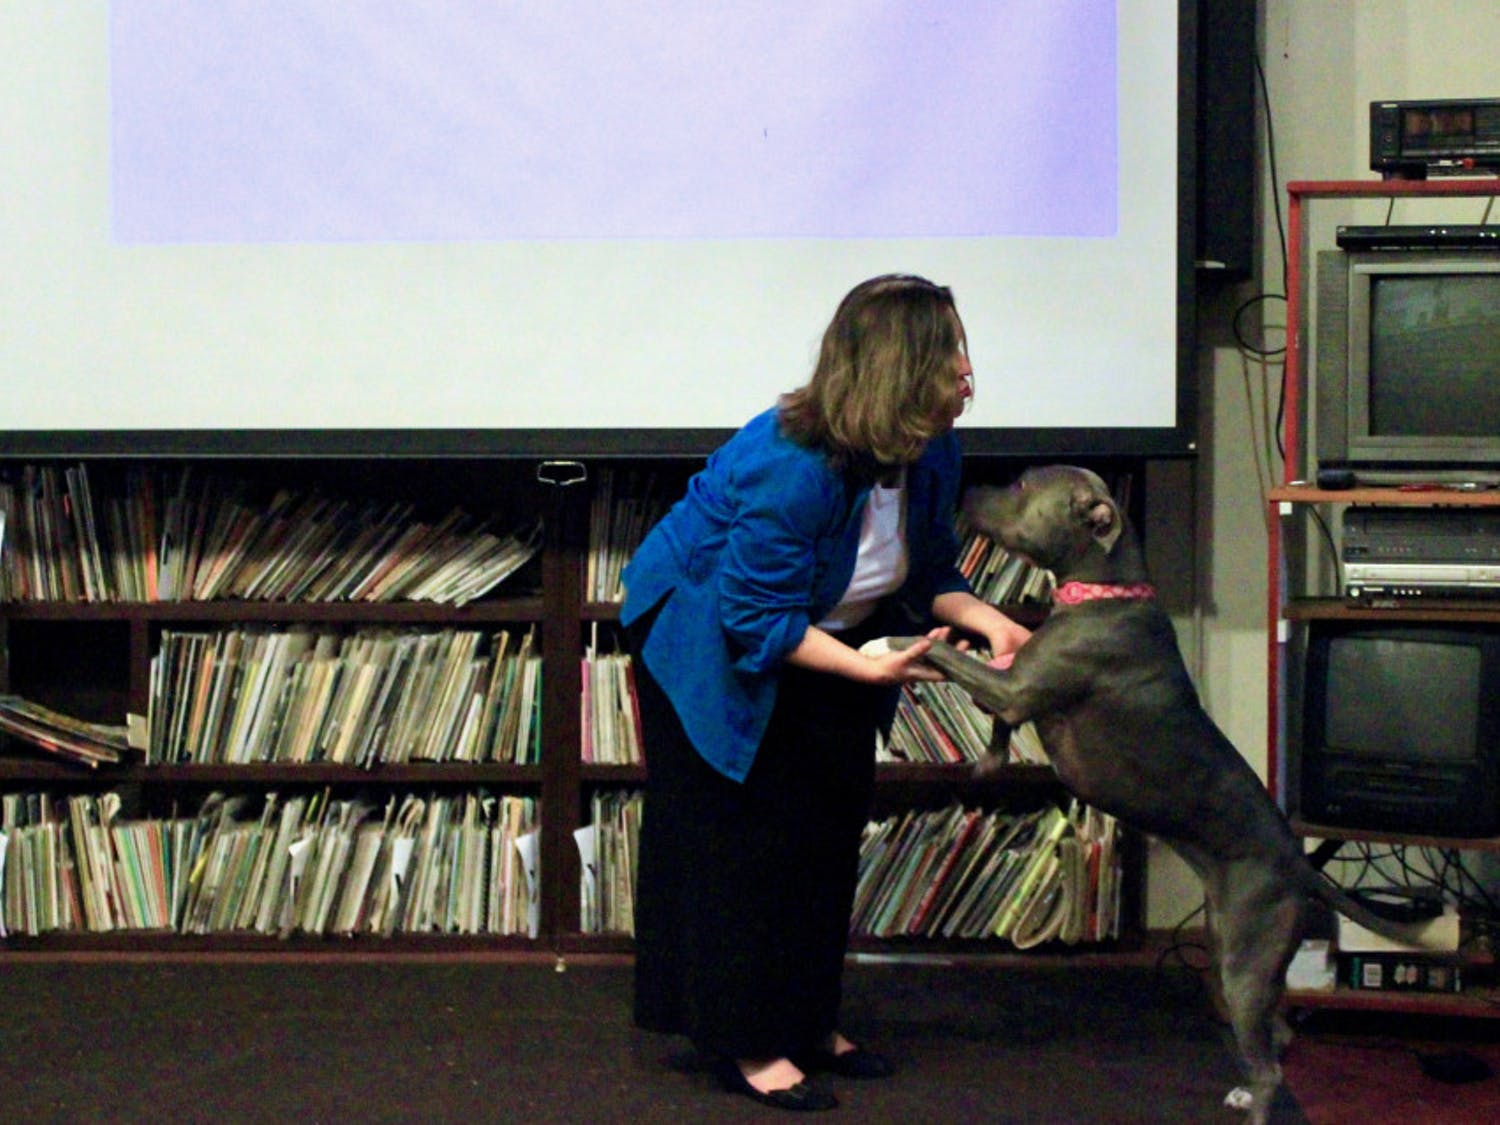 Lori, a support dog, greets Marcy LaHart, a Micanopy-based animal law lawyer, during her speech at the Civic Media Center in downtown Gainesville Tuesday evening.